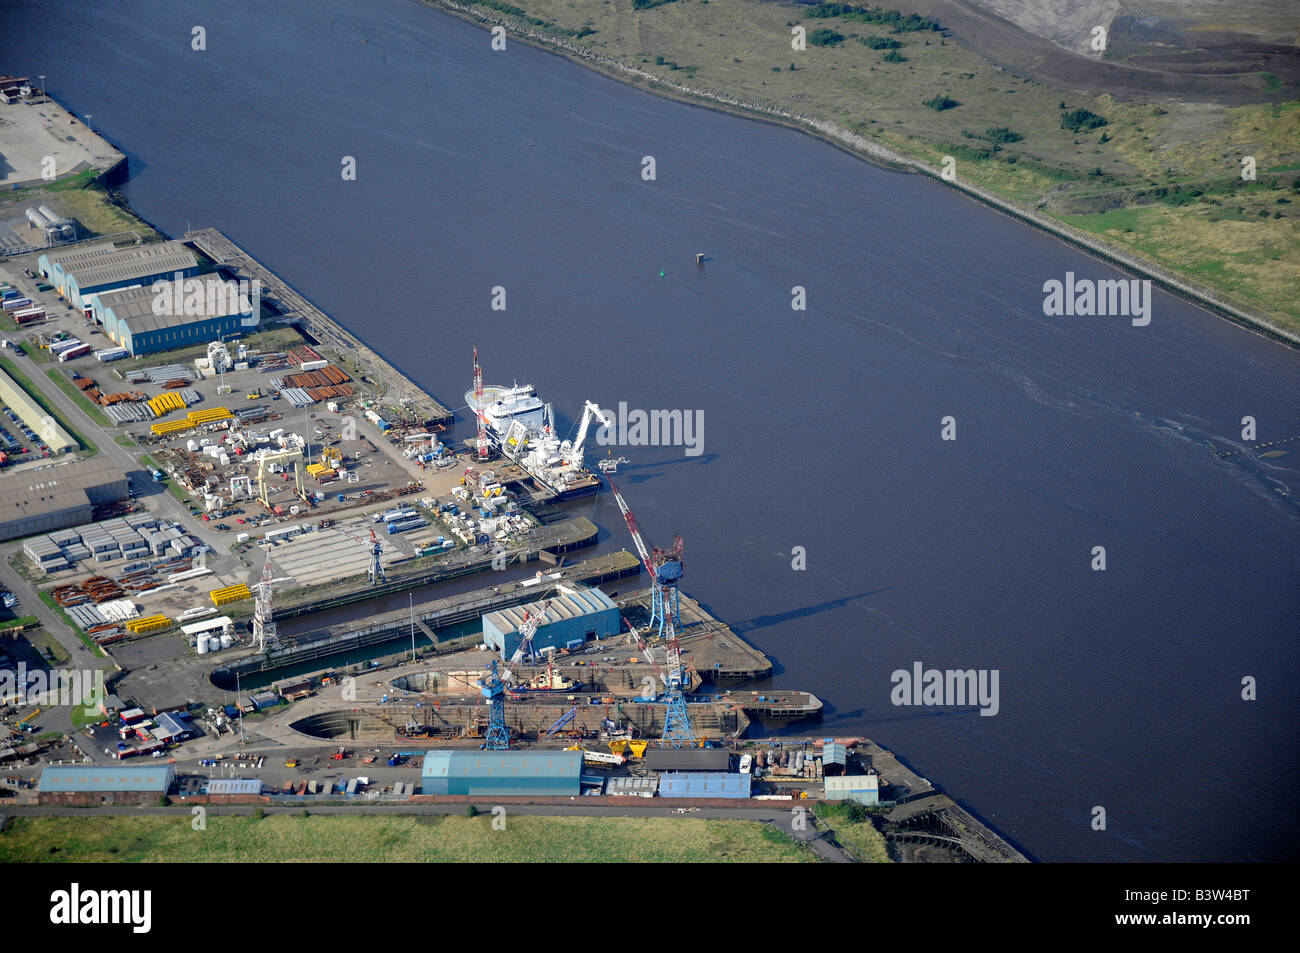 Ship yard on the River Tees, from the air, Teeside, Northern England - Stock Image